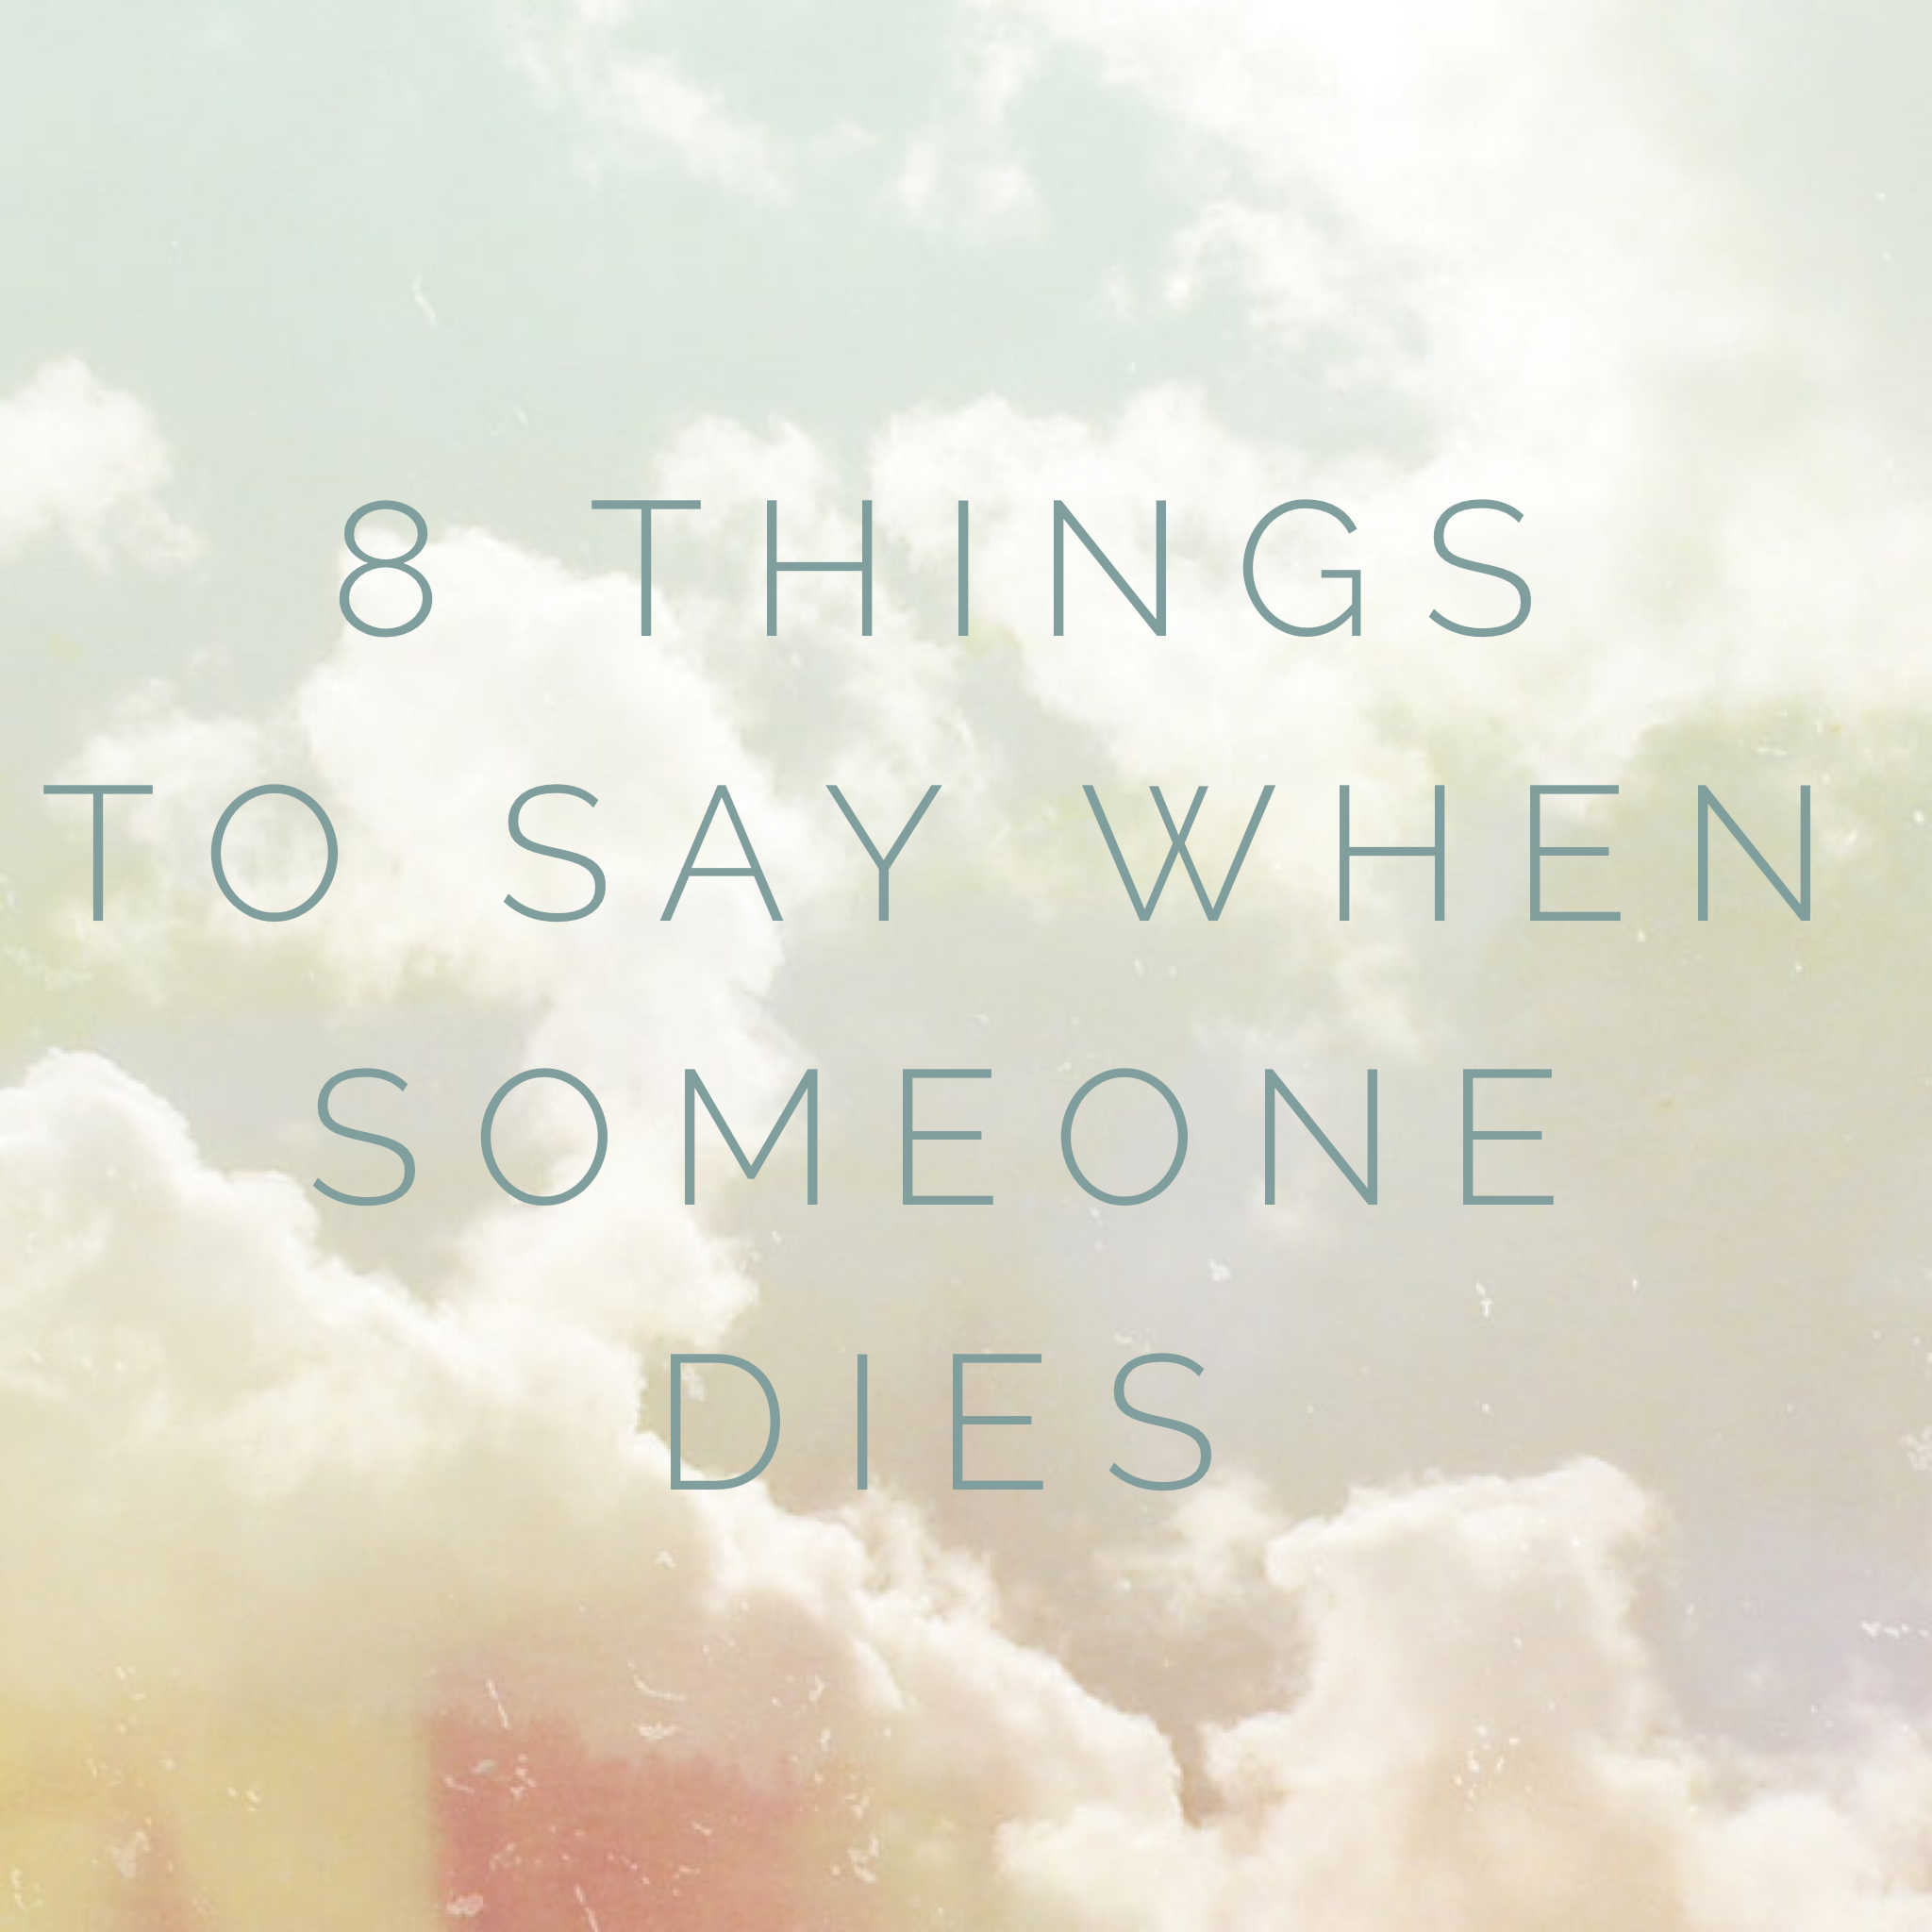 Things To Say When You Meet Someone